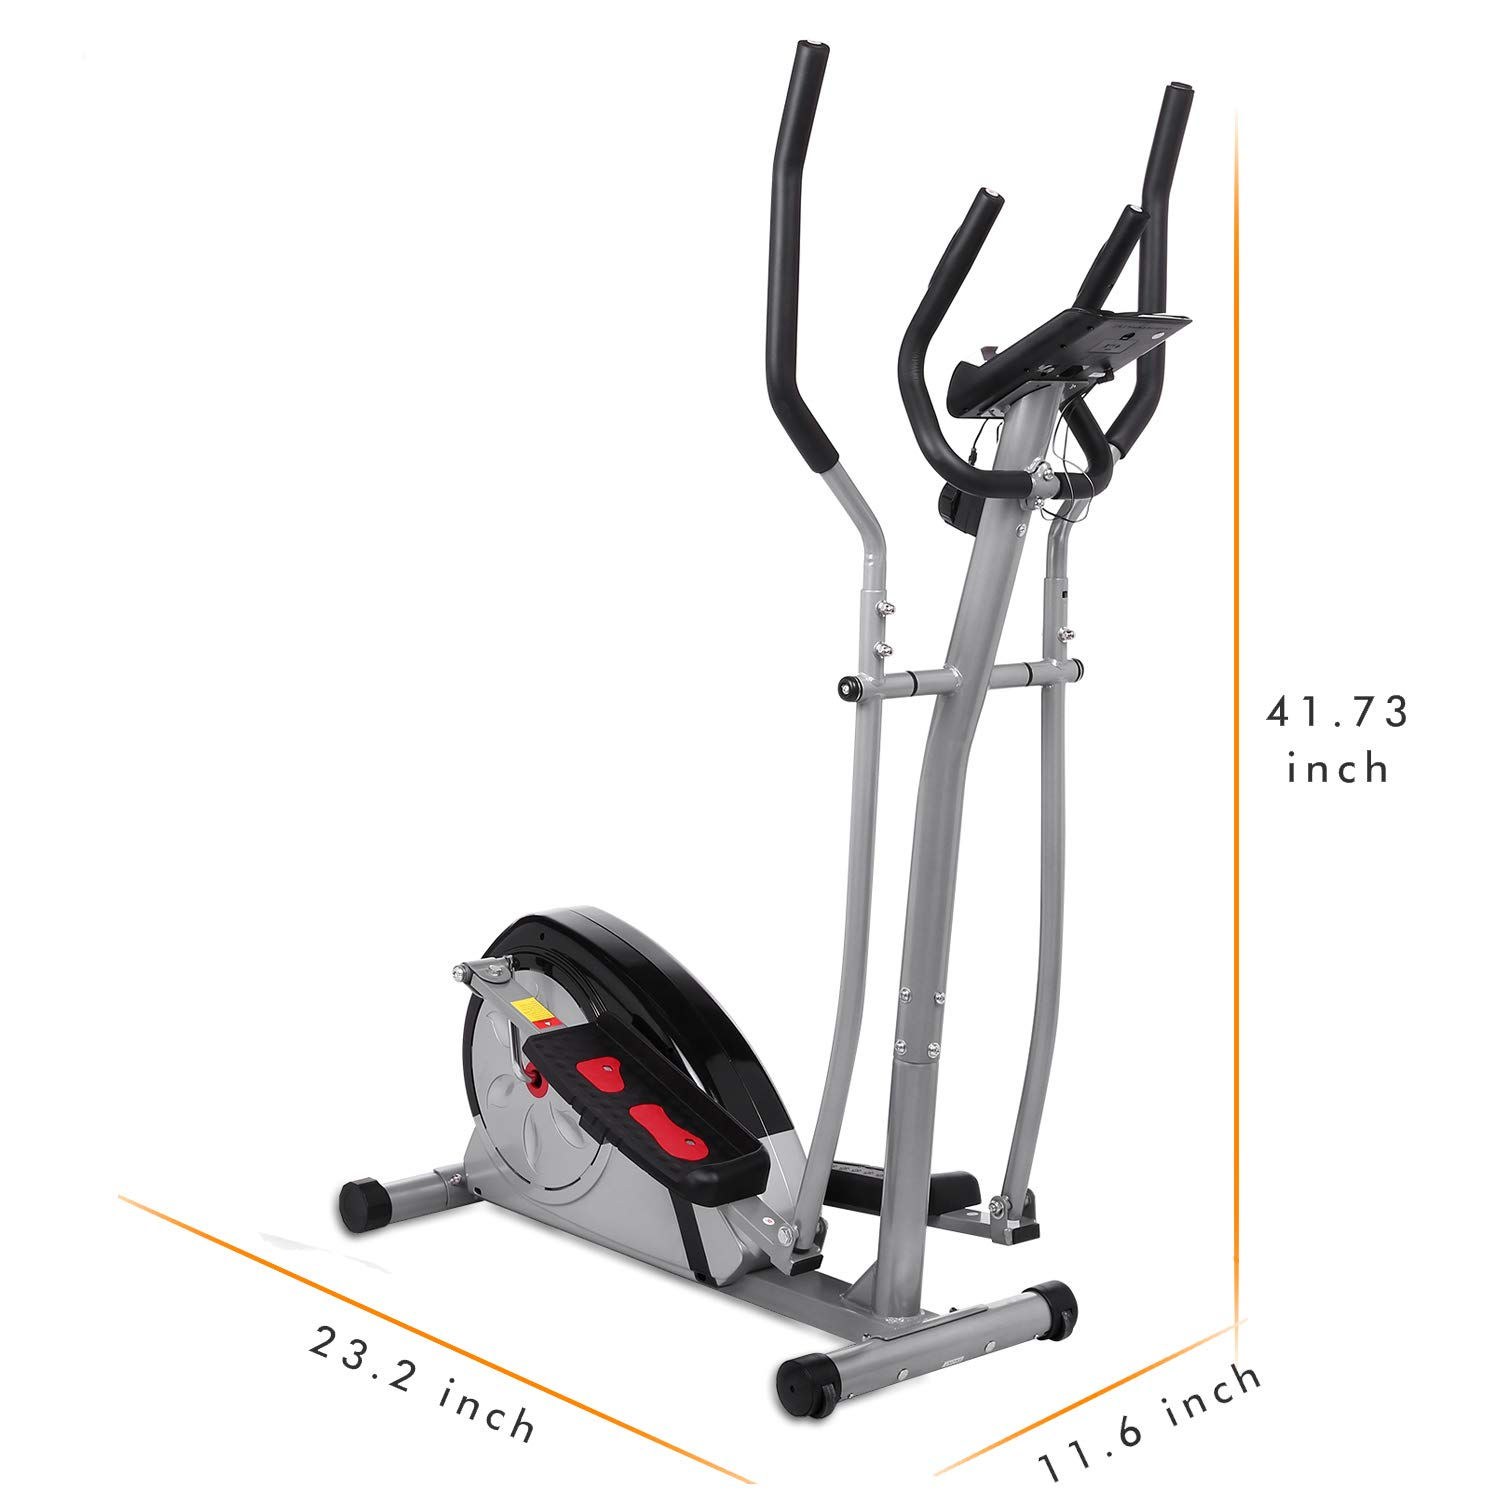 Aceshin Elliptical Machine Trainer Compact Life Fitness Exercise Equipment for Home Workout Offic Gym (Gray2) by Aceshin (Image #8)